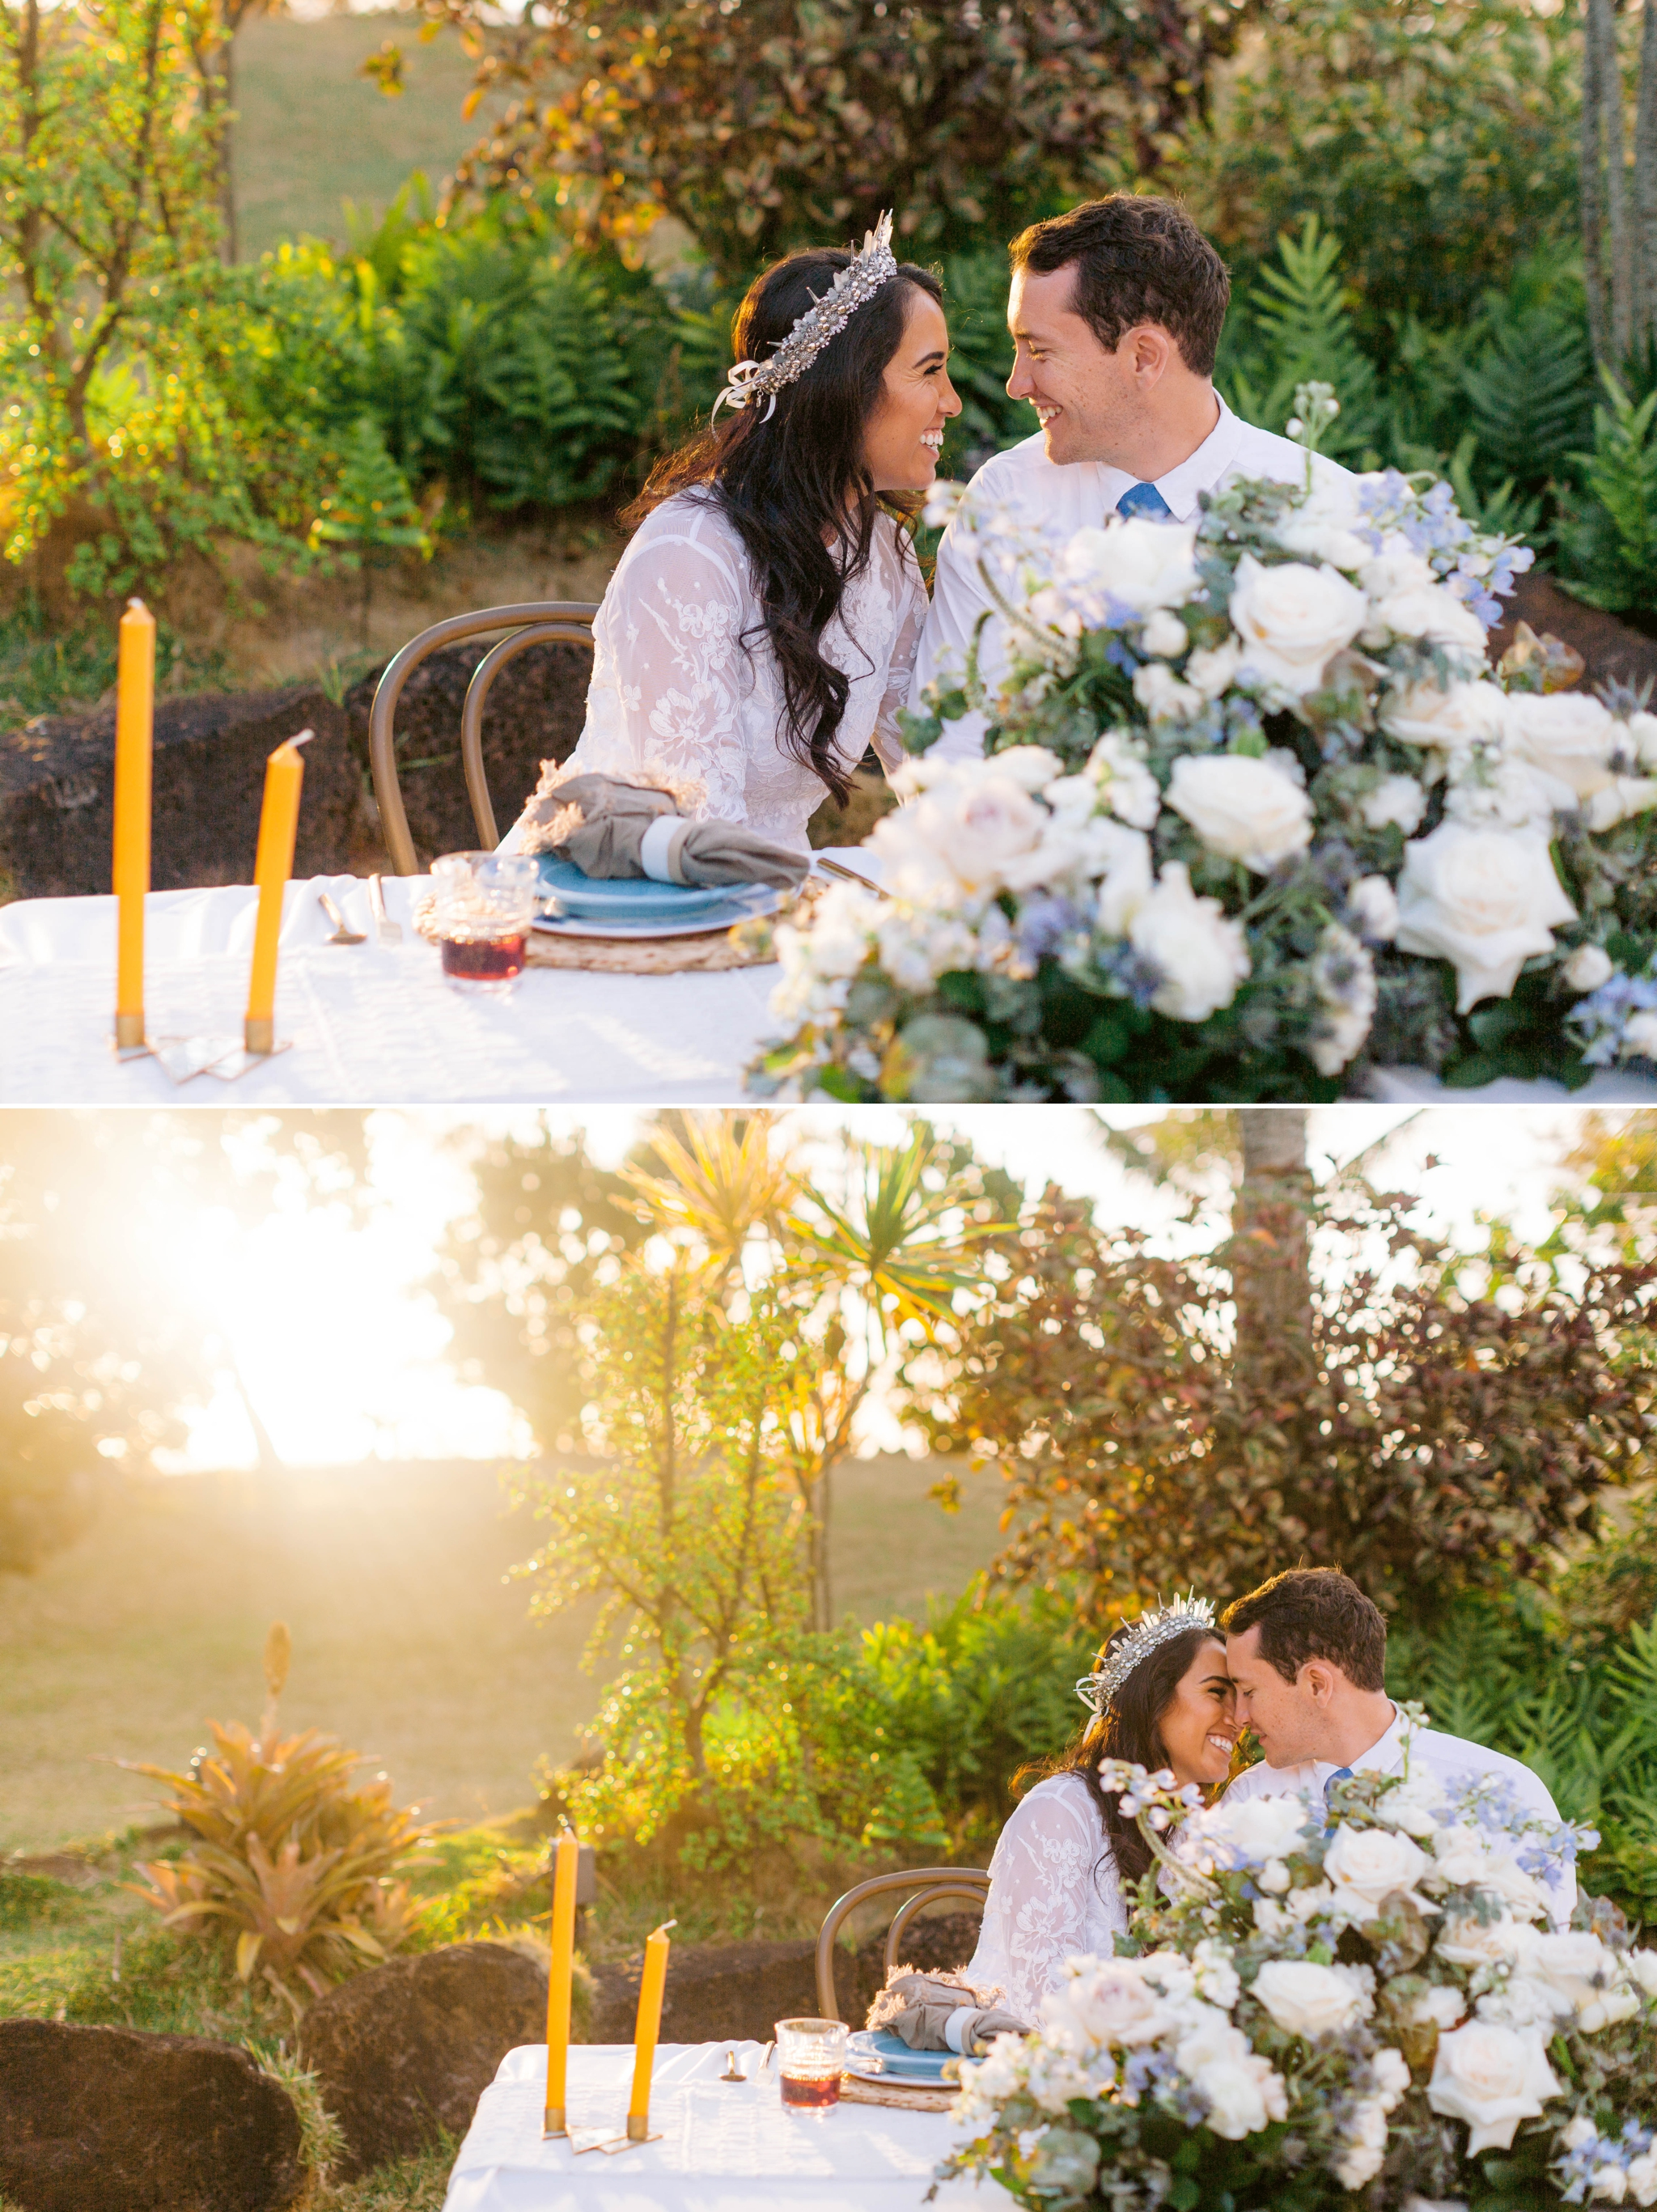 Bride and Groom at sunset for their outdoor wedding at their sweetheart table - Ana + Elijah - Wedding at Loulu Palm in Haleiwa, HI - Oahu Hawaii Wedding Photographer - #hawaiiweddingphotographer #oahuweddings #hawaiiweddings